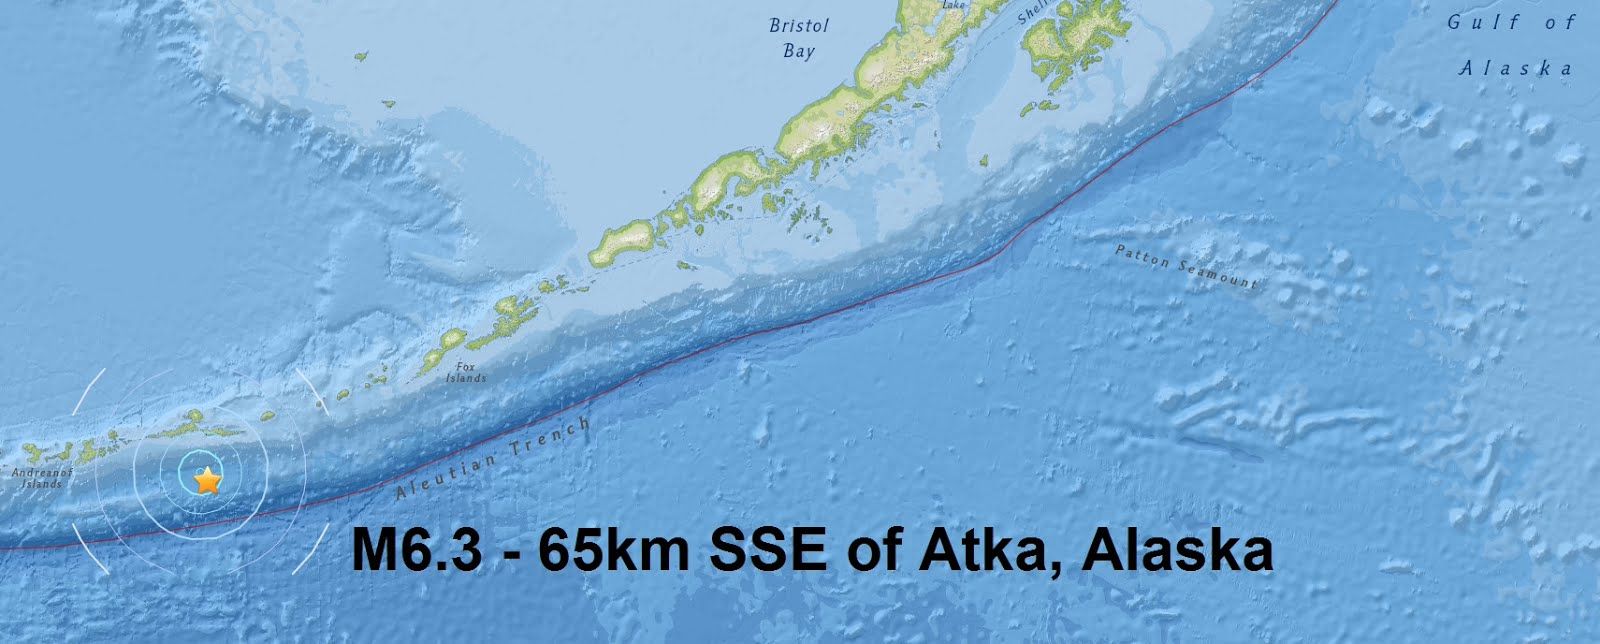 M6.3 - 65km SSE of Atka, Alaska is only the second major quake of March 2016